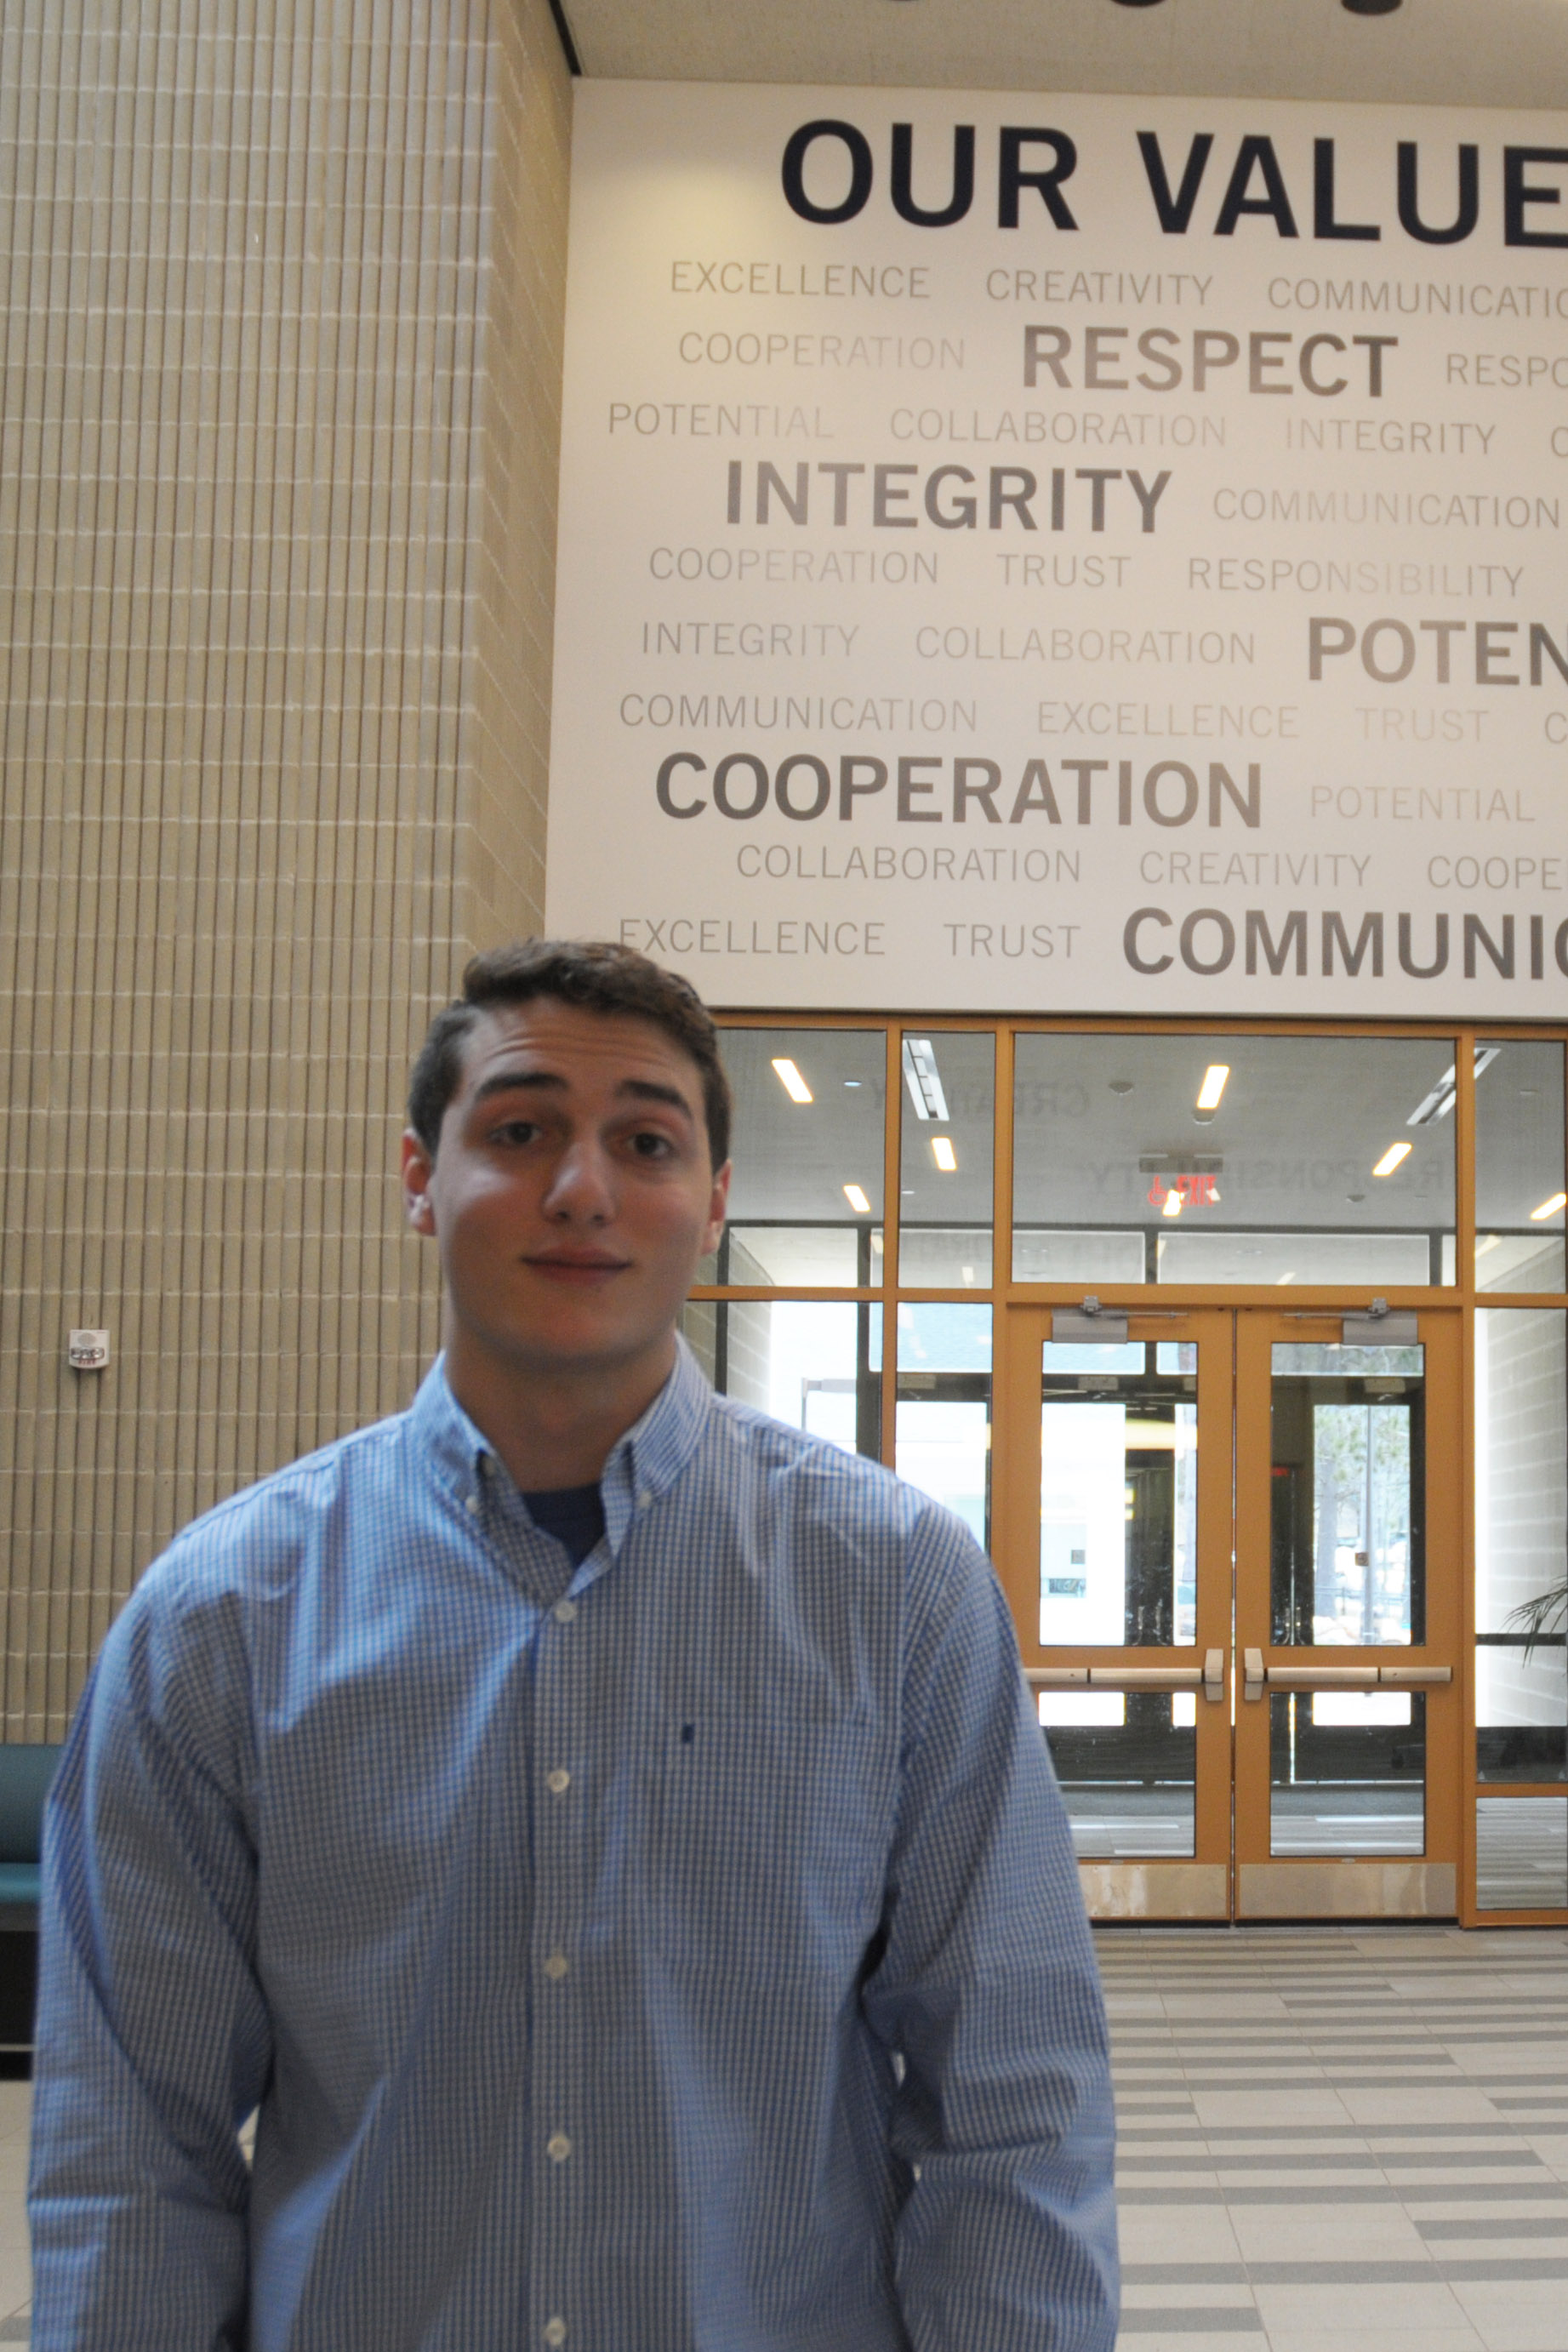 A student stands in a hallway with a poster listing a gathering of positive words behind him.